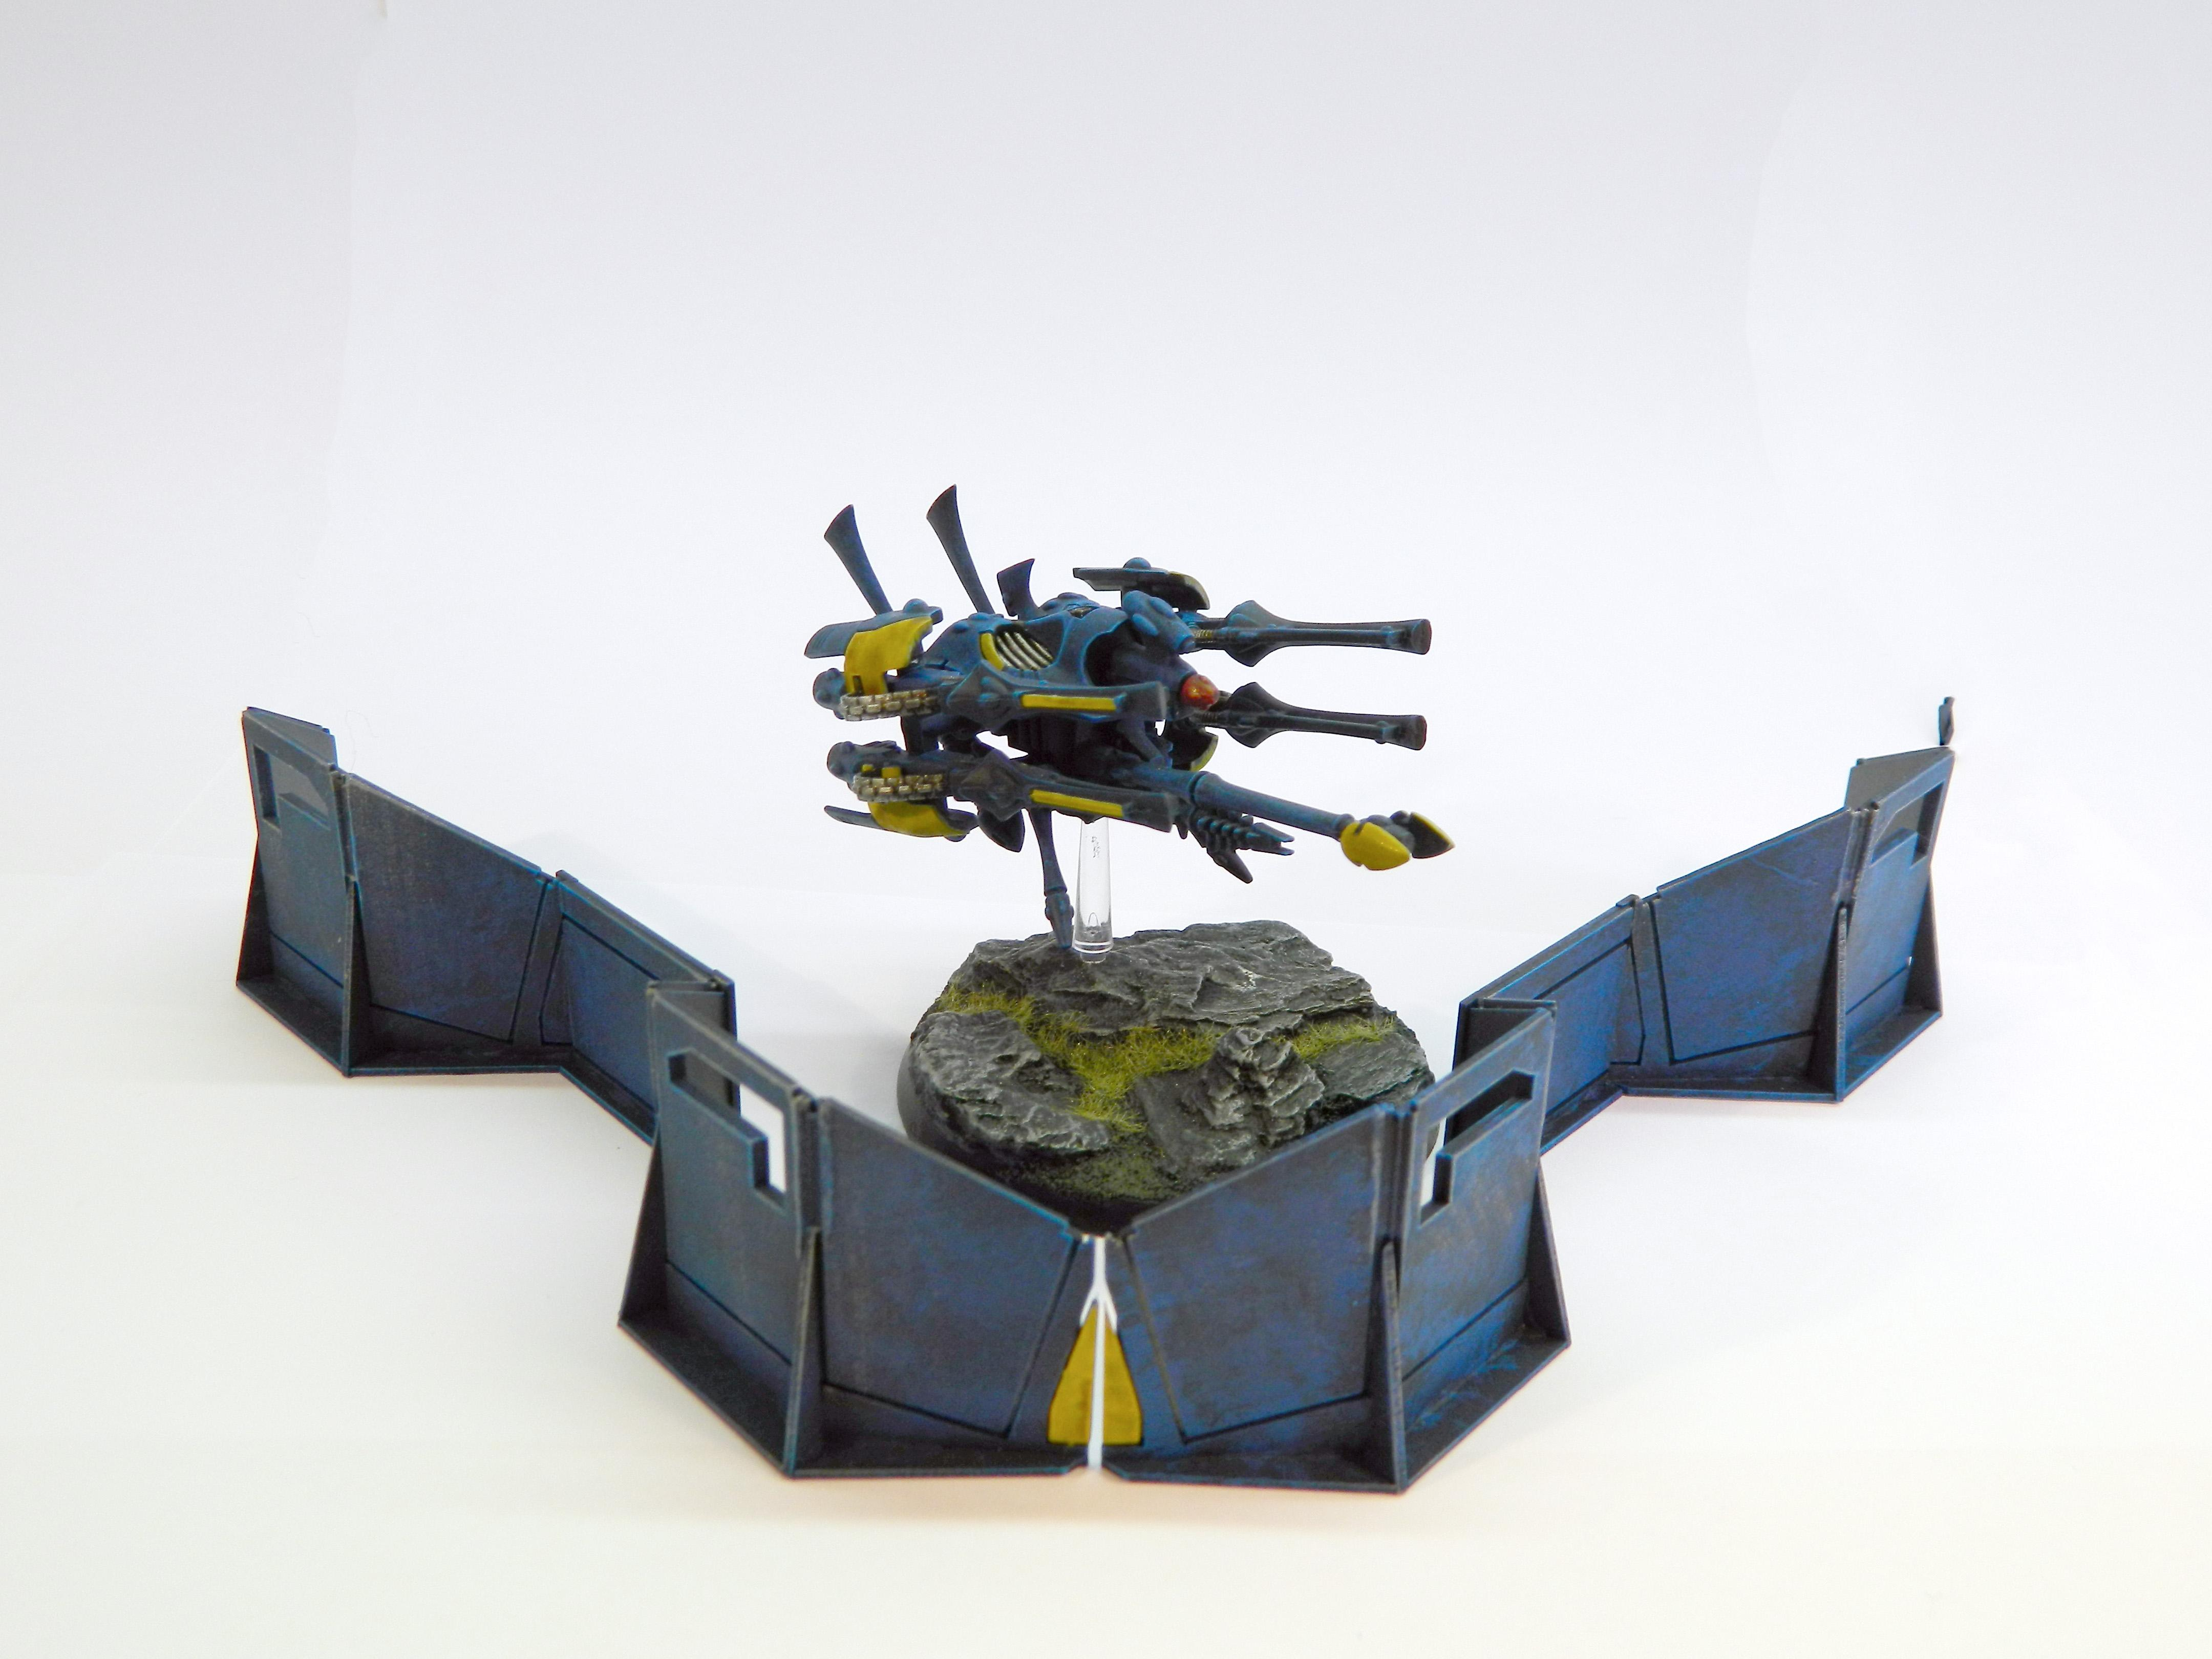 Aegis Defence Line, Eldar, Quad Cannon, Scratch Build, War Walker, Warhammer 40,000